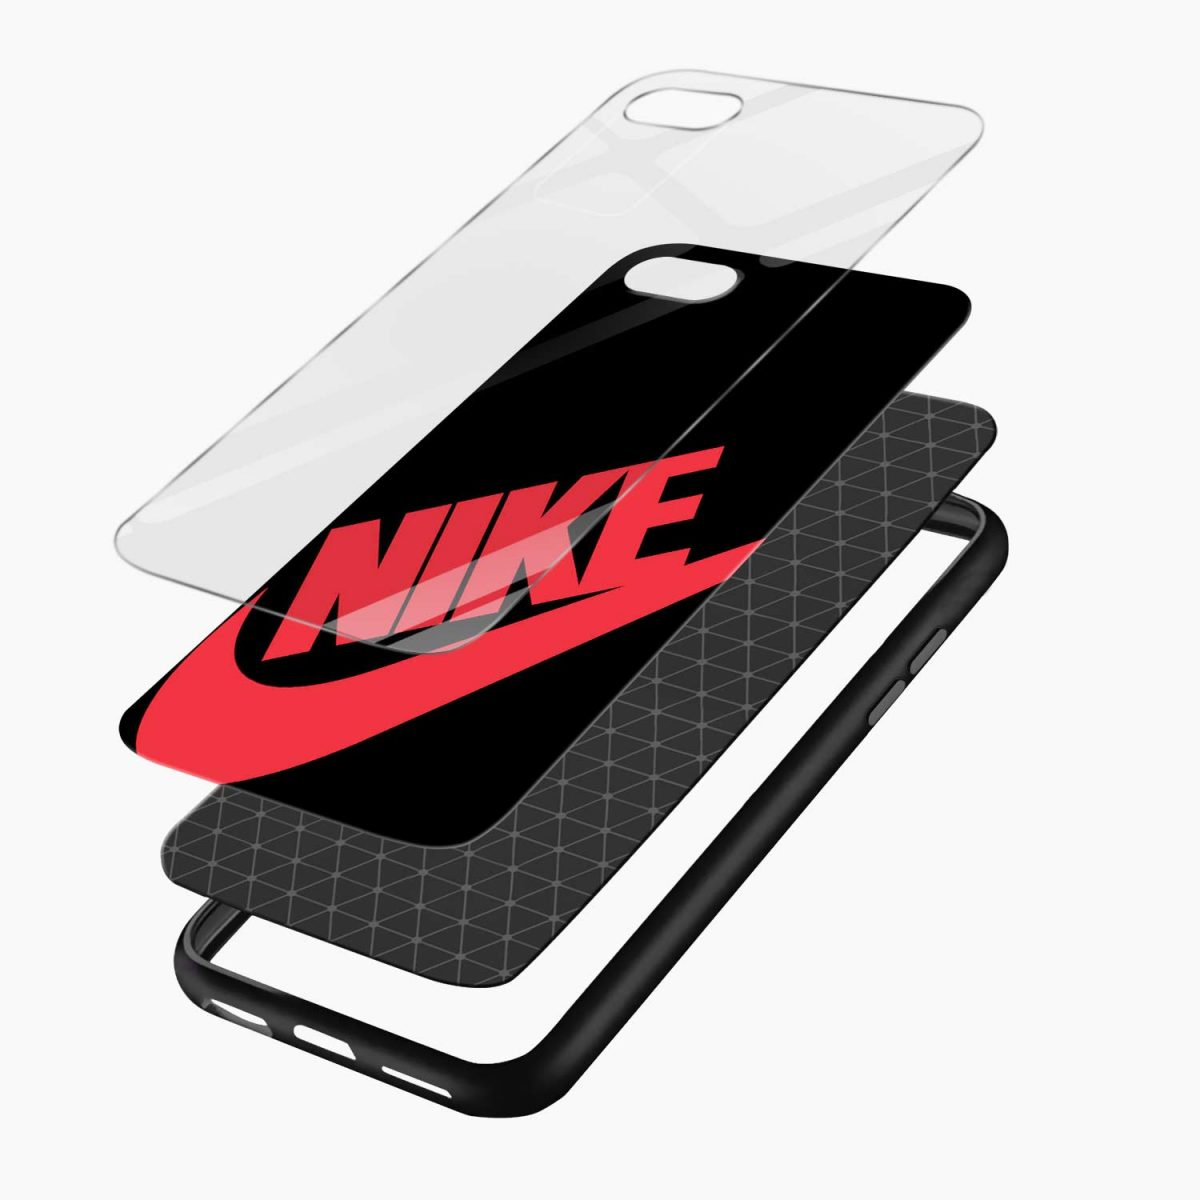 nike black red diagonal view apple iphone 6 7 8 se back cover 4